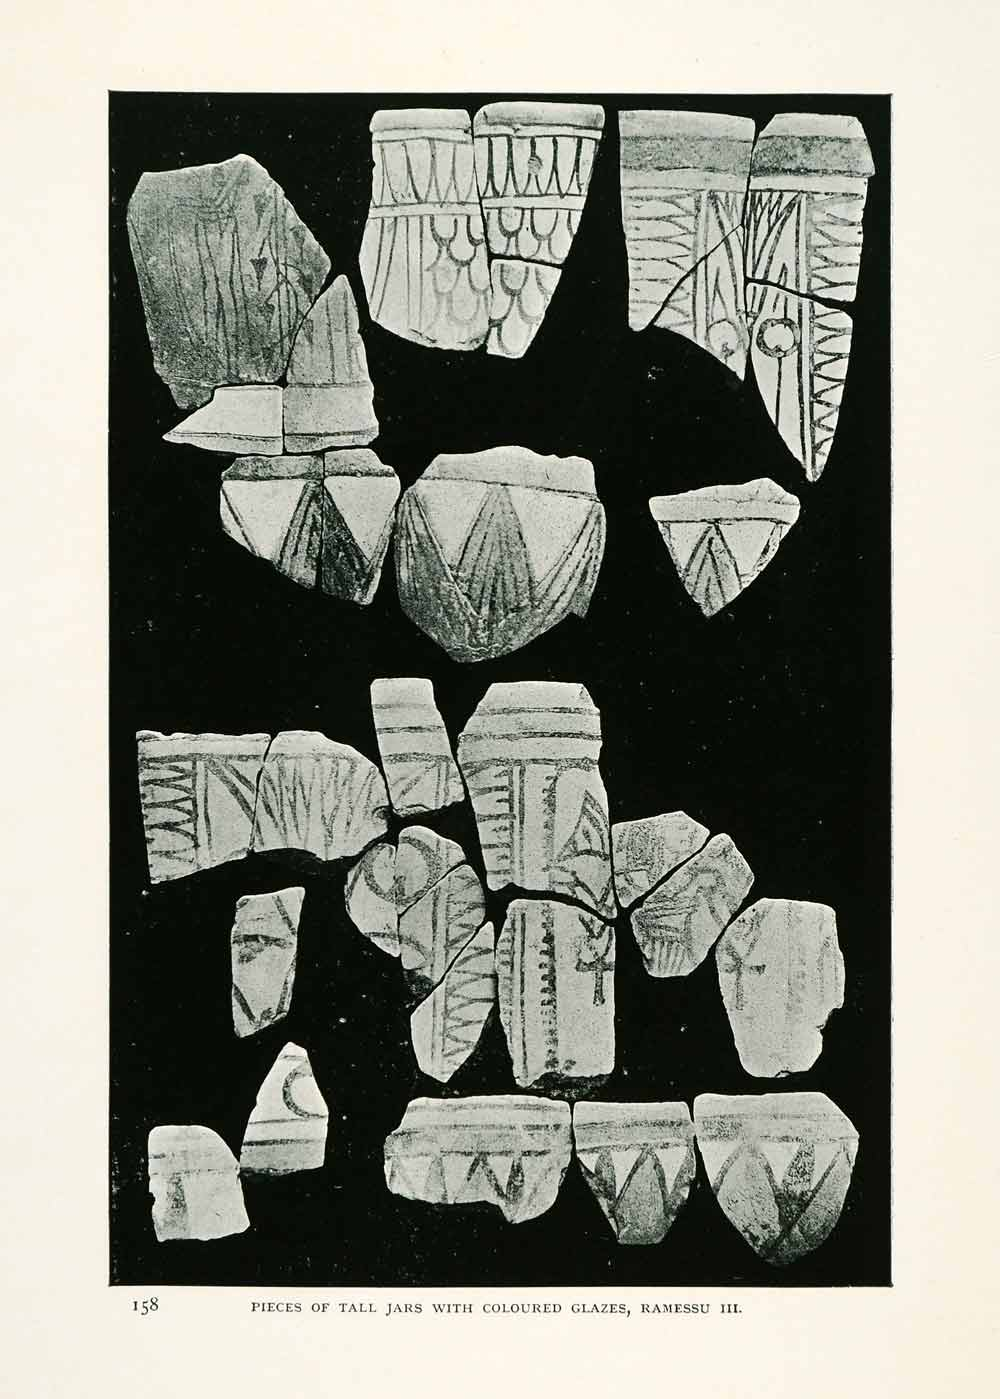 1906 Print Pieces Tall Jars Colored Glazes Ramessu Sinai Egypt Archeology XGW4